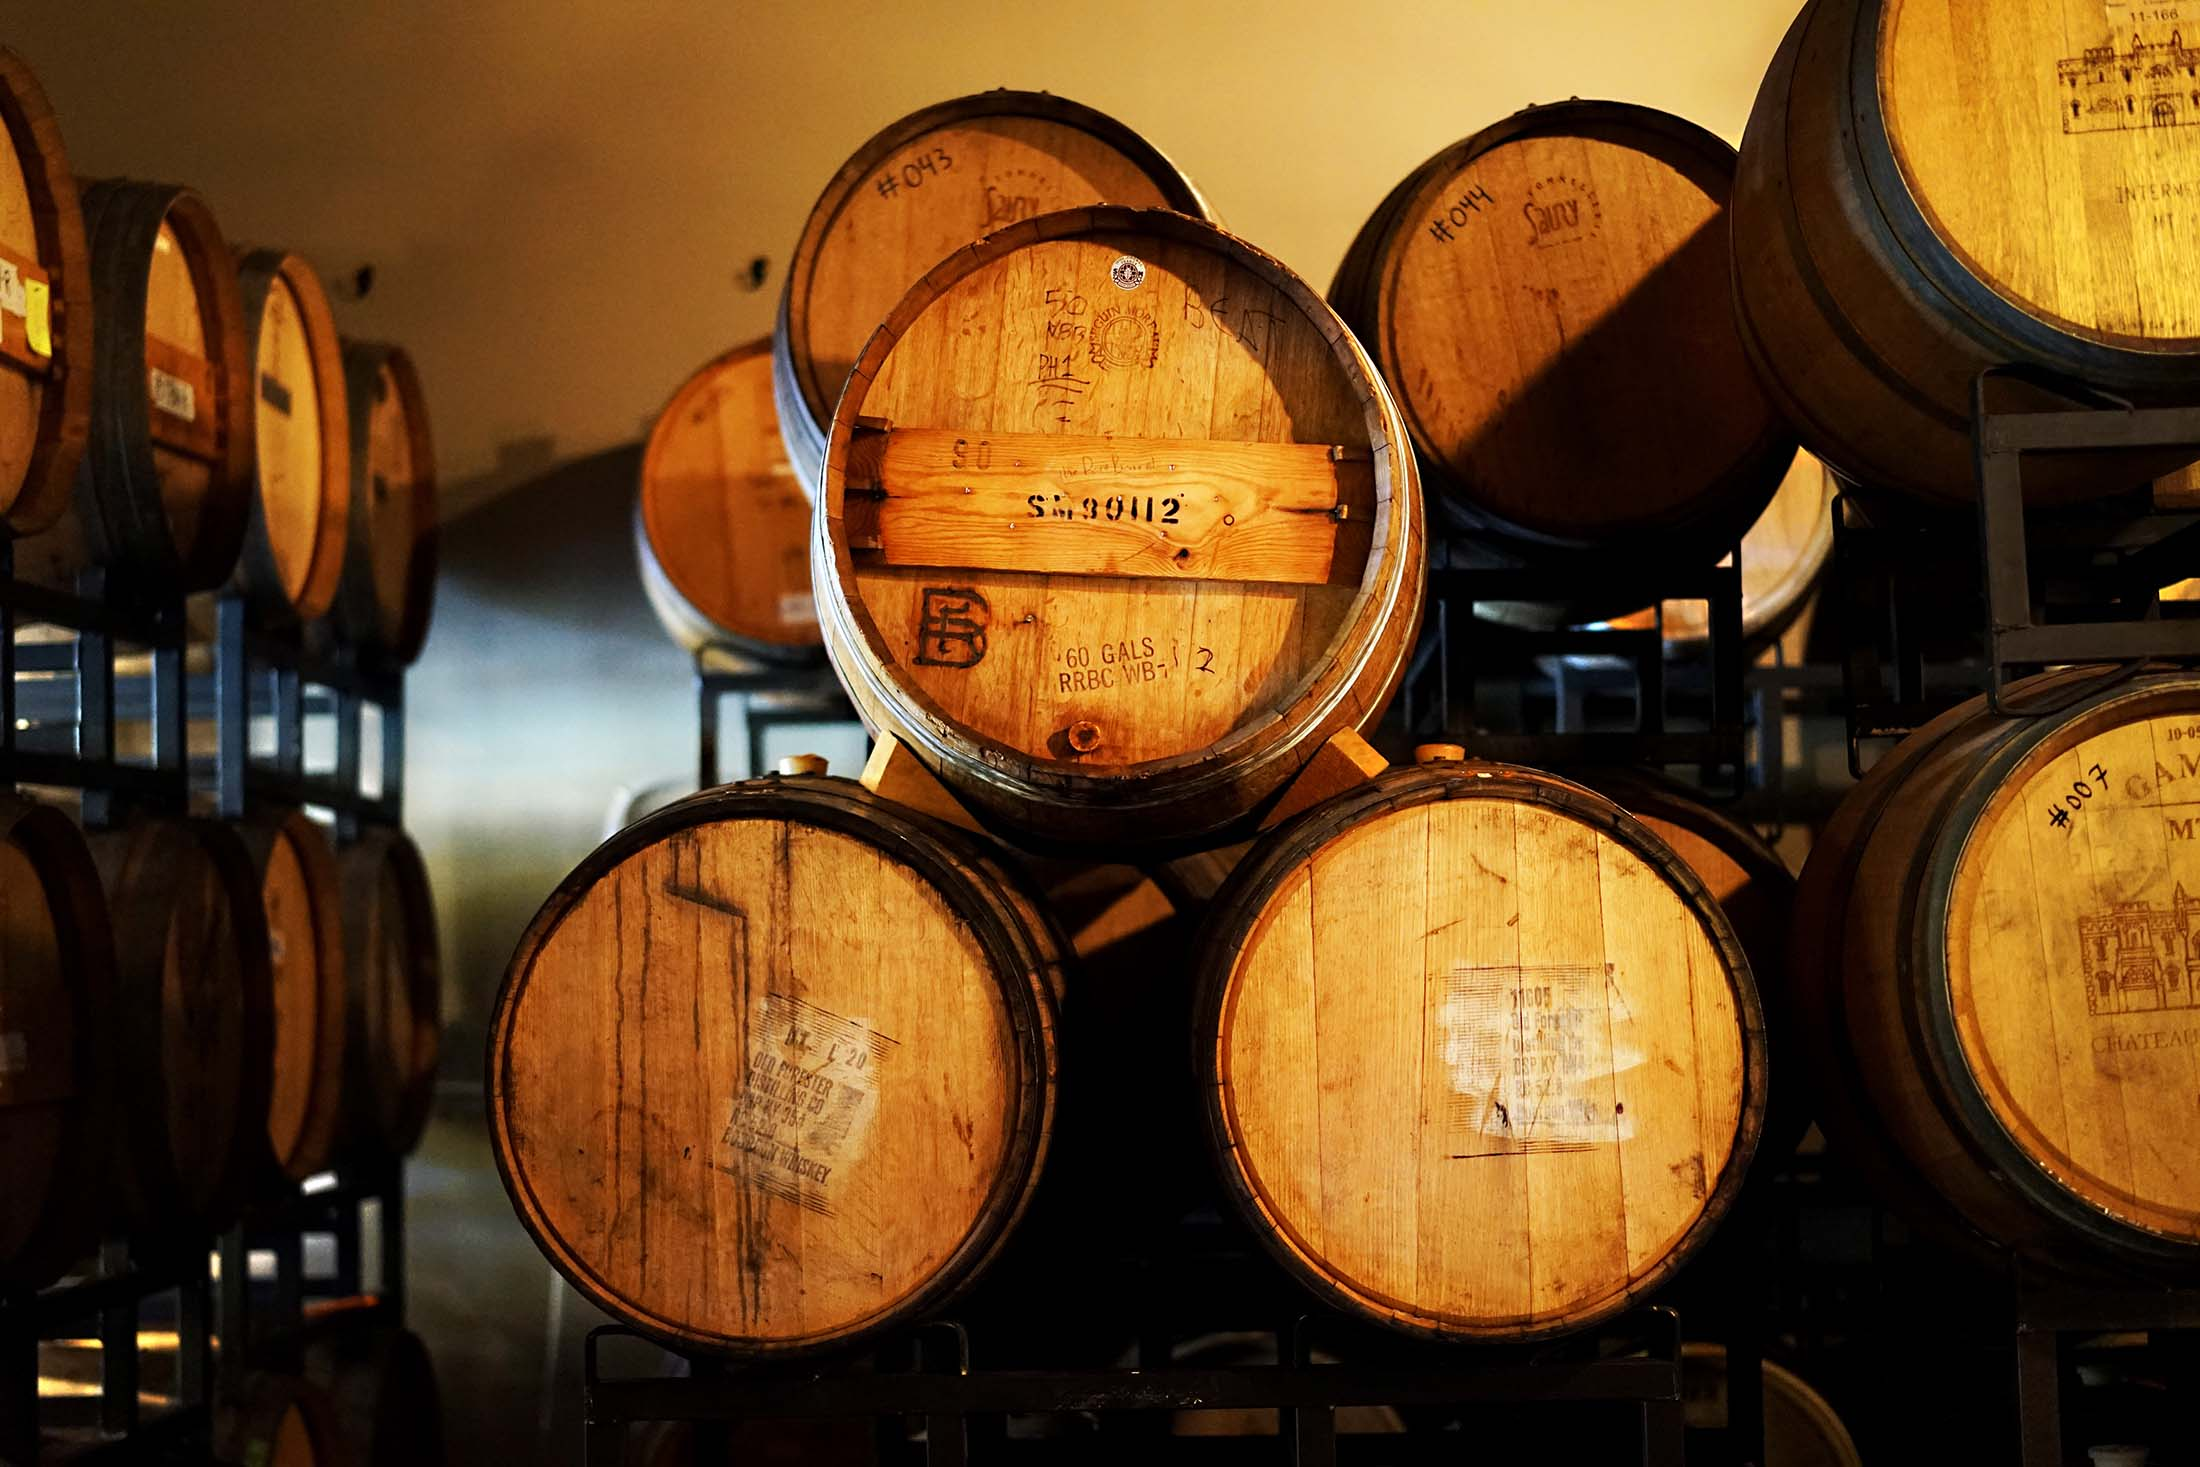 The Rare Barrel pH1, a history of sour beer